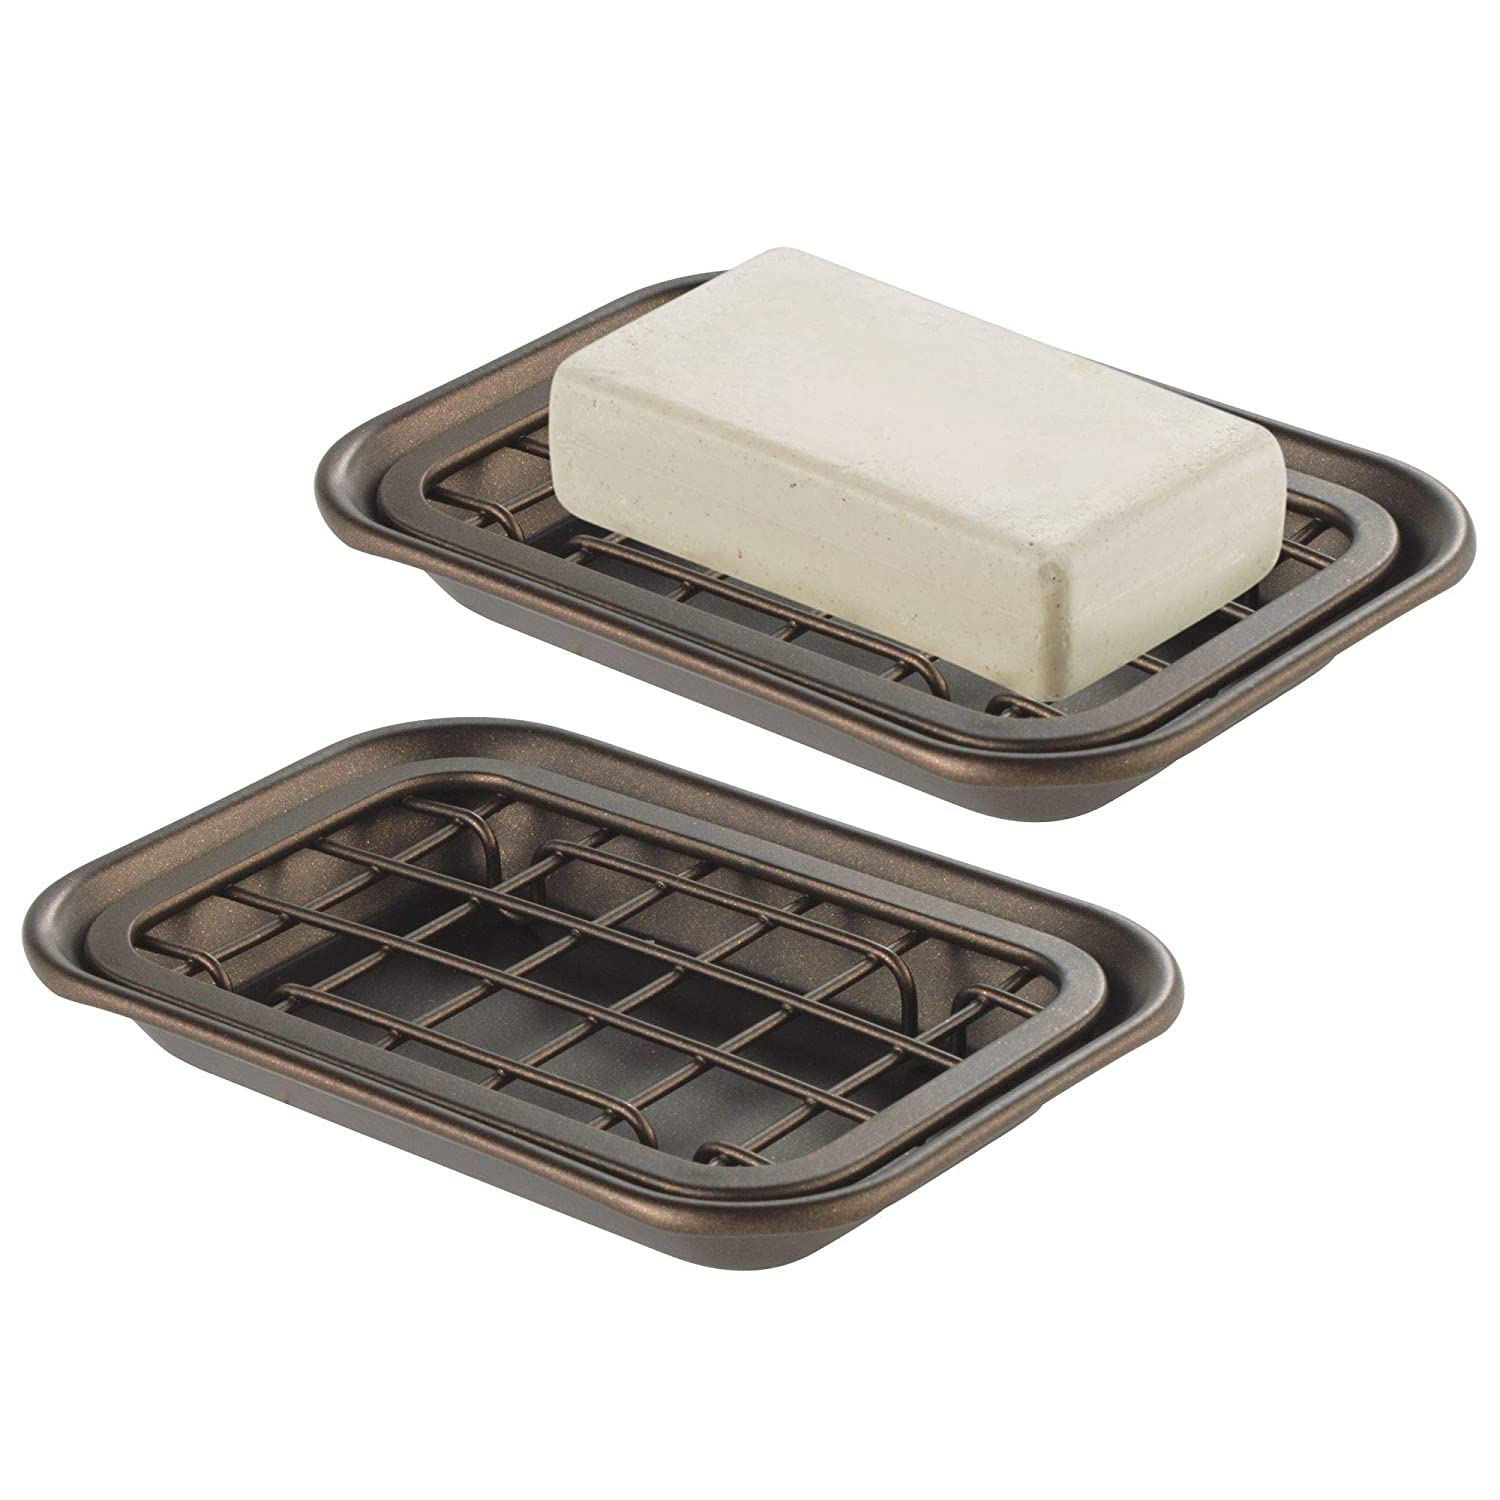 mDesign 2-Piece Soap Dish Tray for Kitchen Sink Countertops: Drainer and Holder for Soap, Sponges - Drainage Grid with Tray - Pack of 2, Rust Resistant Stainless Steel Metal in Bronze Finish MetroDecor